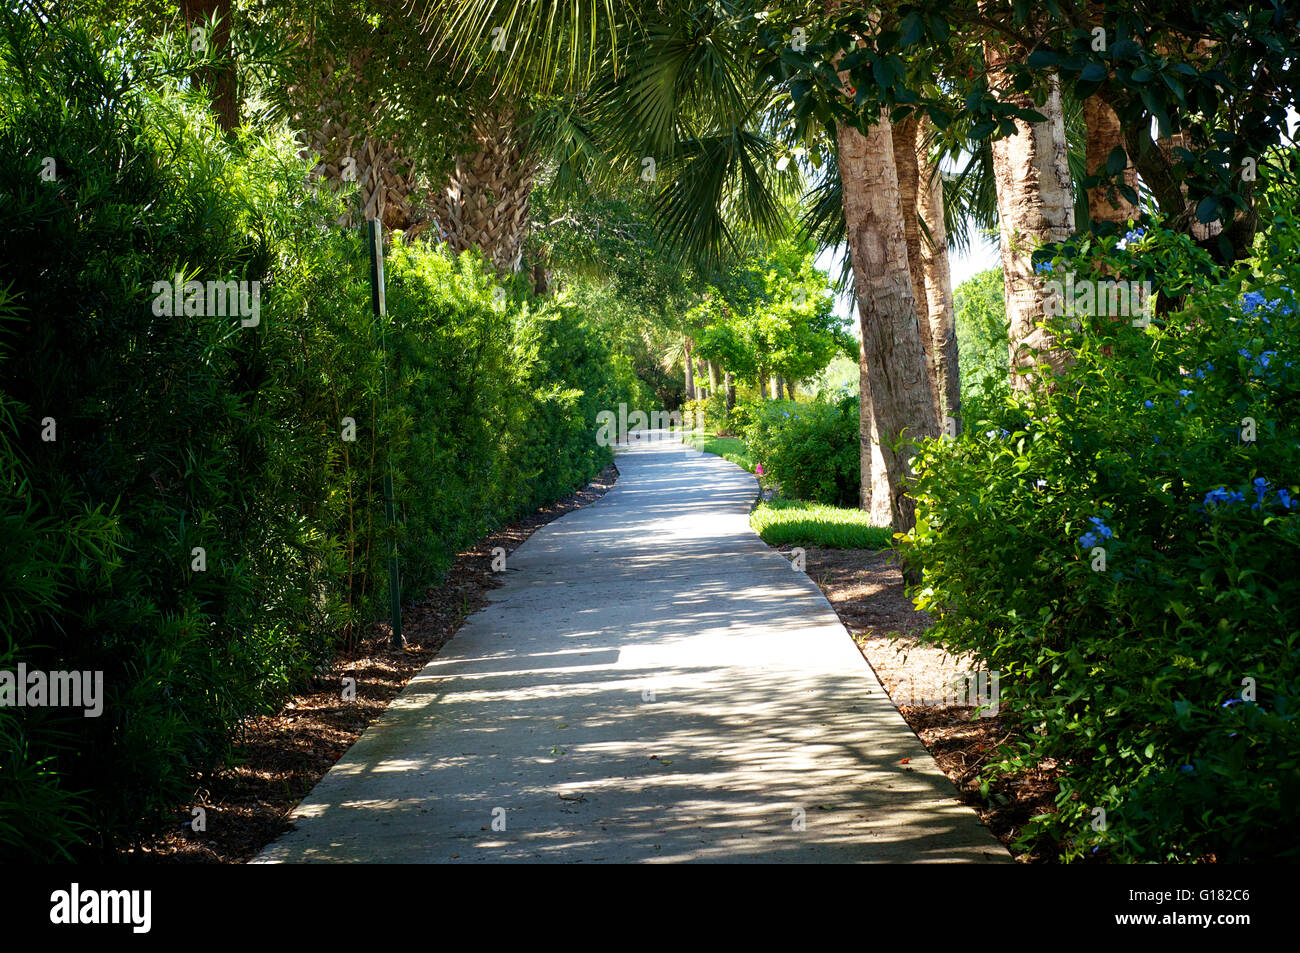 View of beautiful tree lined bike path that connects bonita springs view of beautiful tree lined bike path that connects bonita springs to naples in southwest florida in spring time with flowers a mightylinksfo